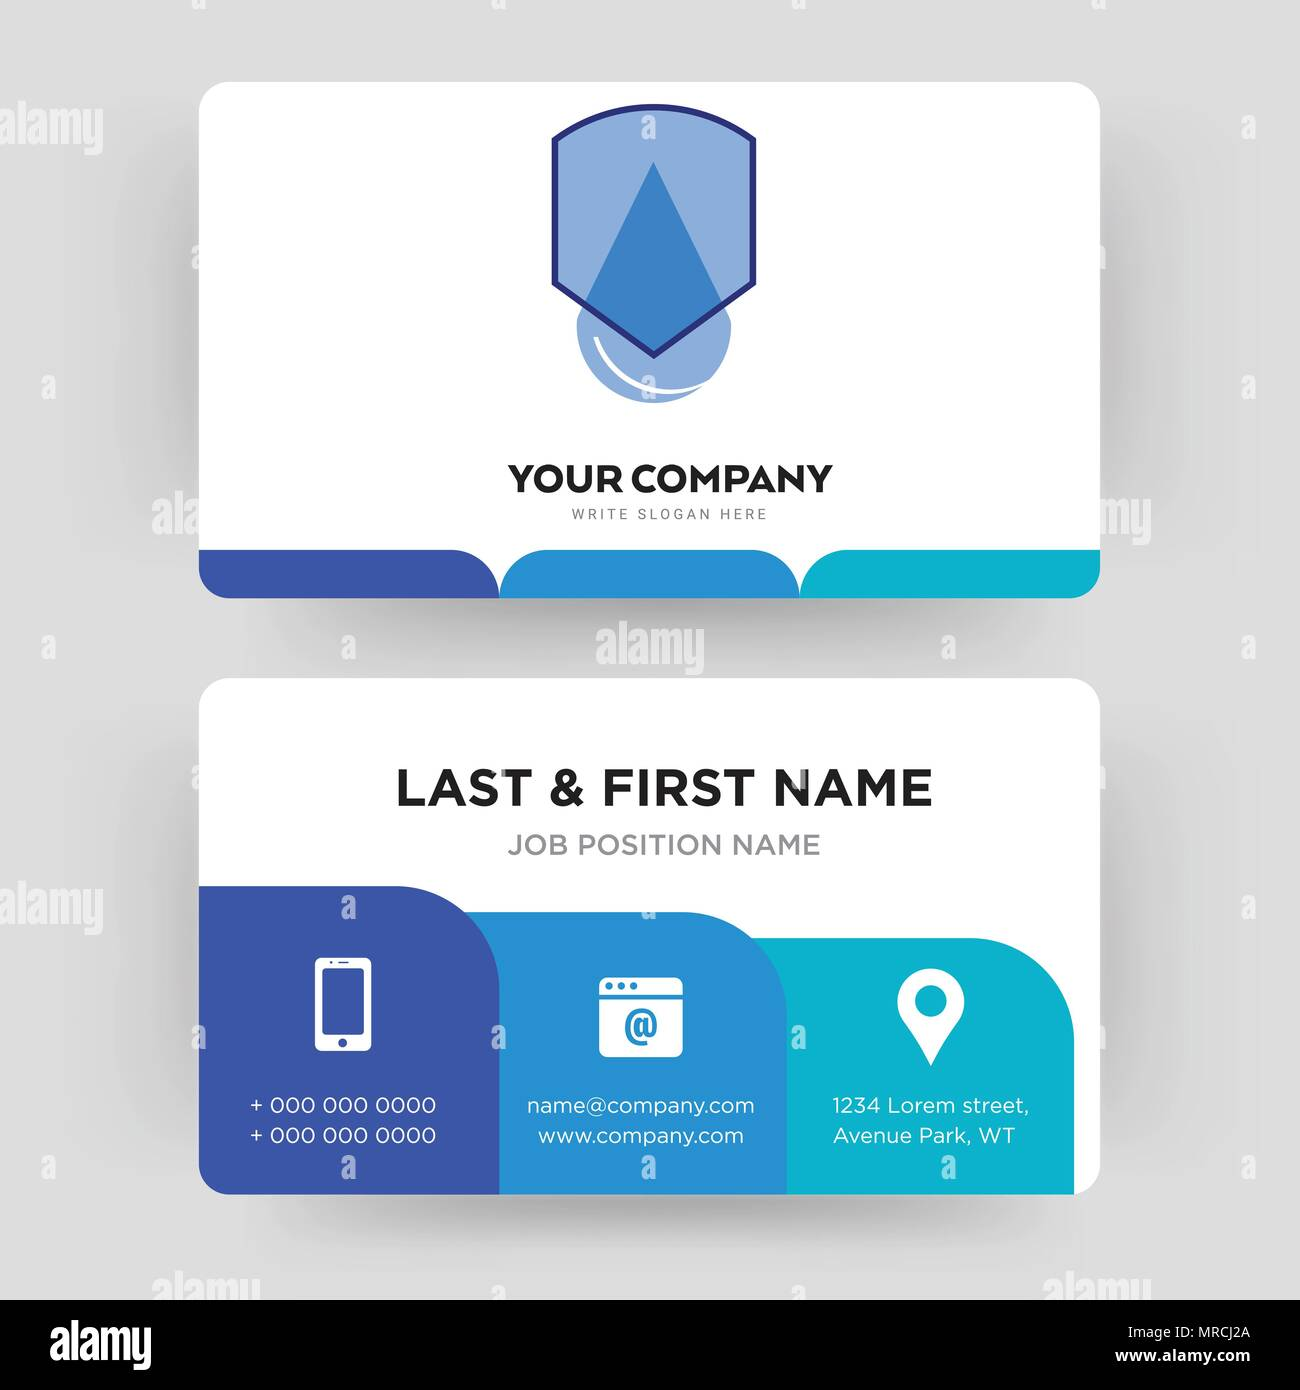 Waterproof business card design template visiting for your company waterproof business card design template visiting for your company modern creative and clean identity card vector colourmoves